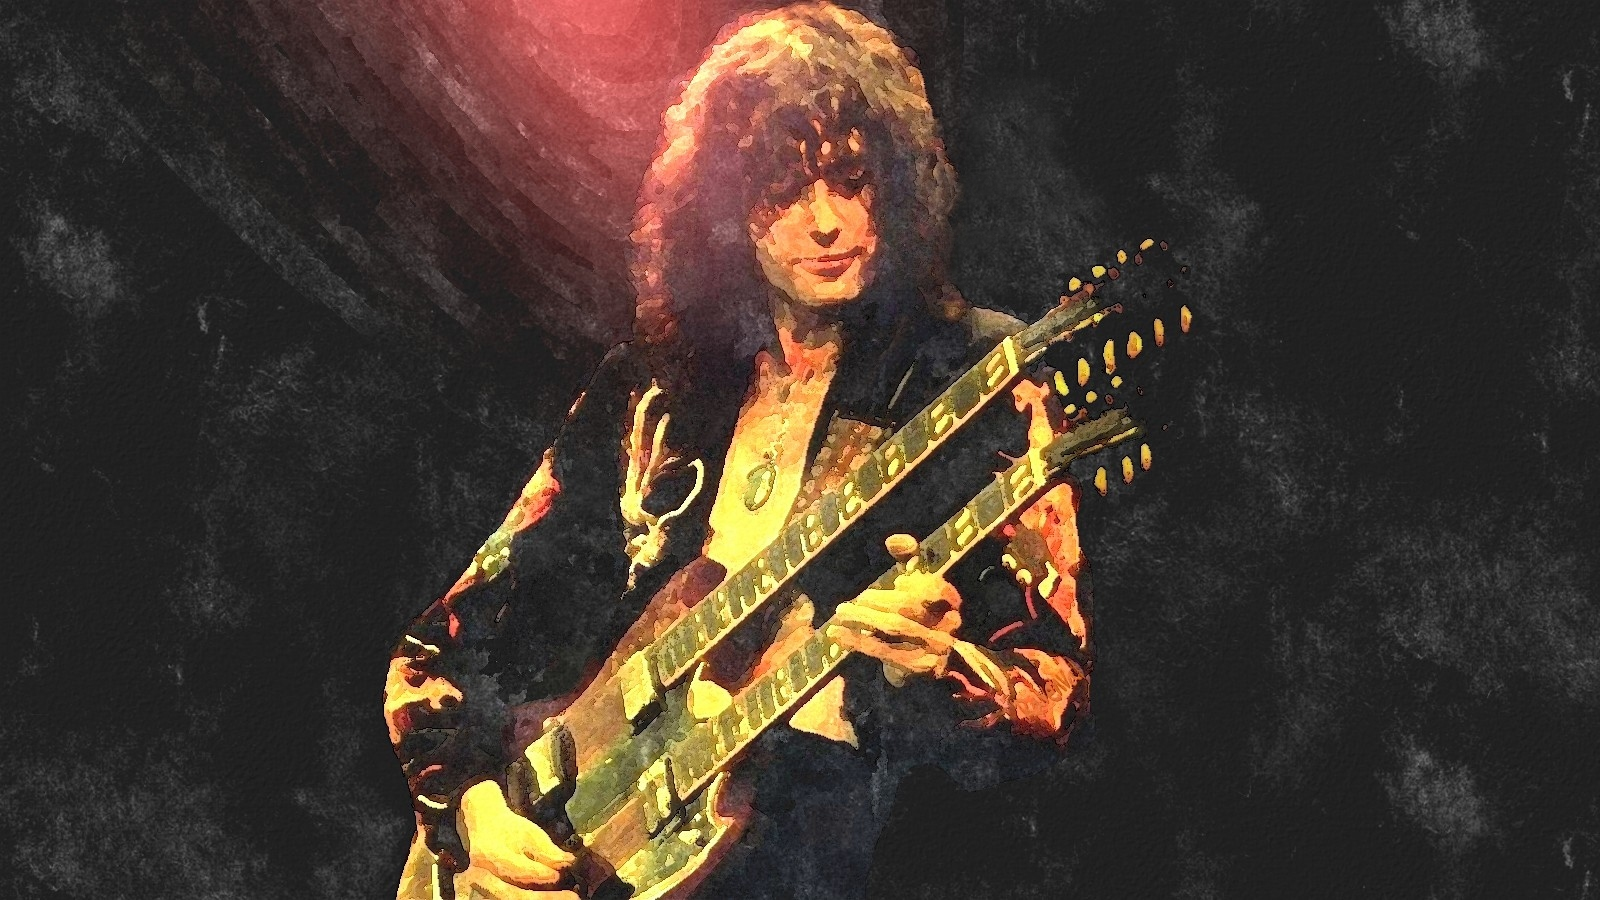 ... Jimmy Page ...